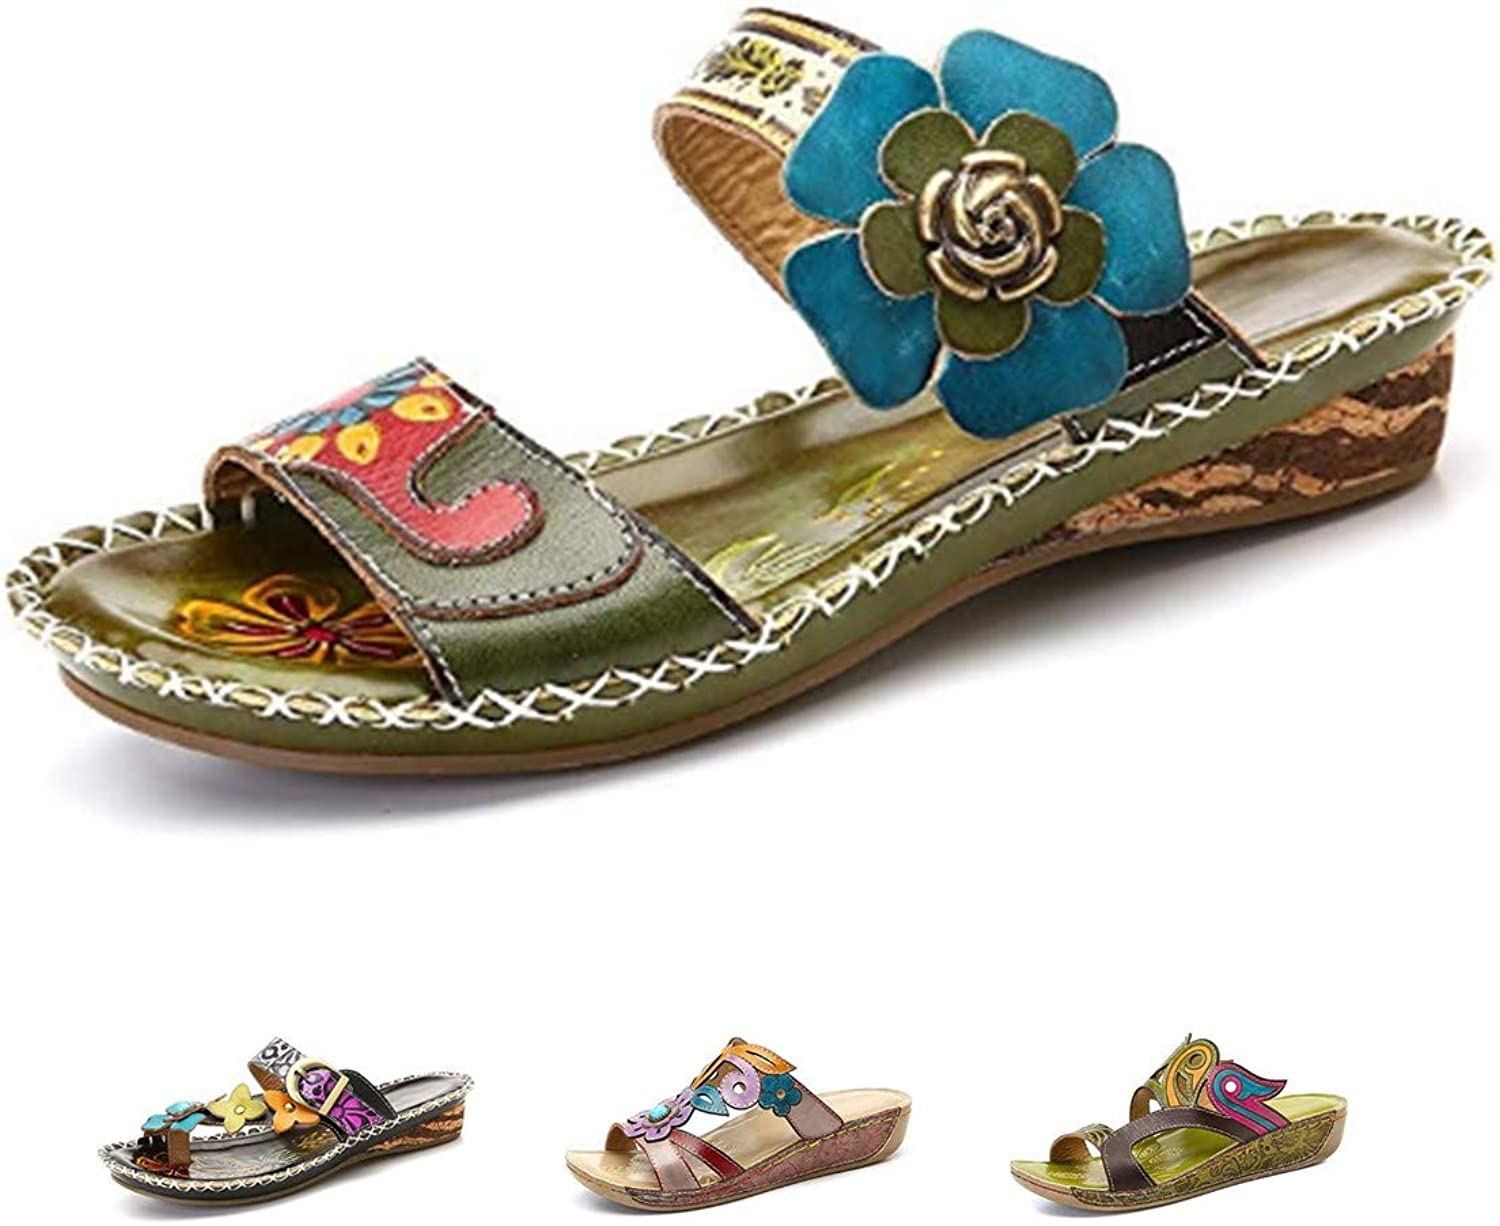 Gracosy Slide Sandals, Women Leather Flat Sandal Slip On Flip Flop shoes Flower Splicing Platform Sandals